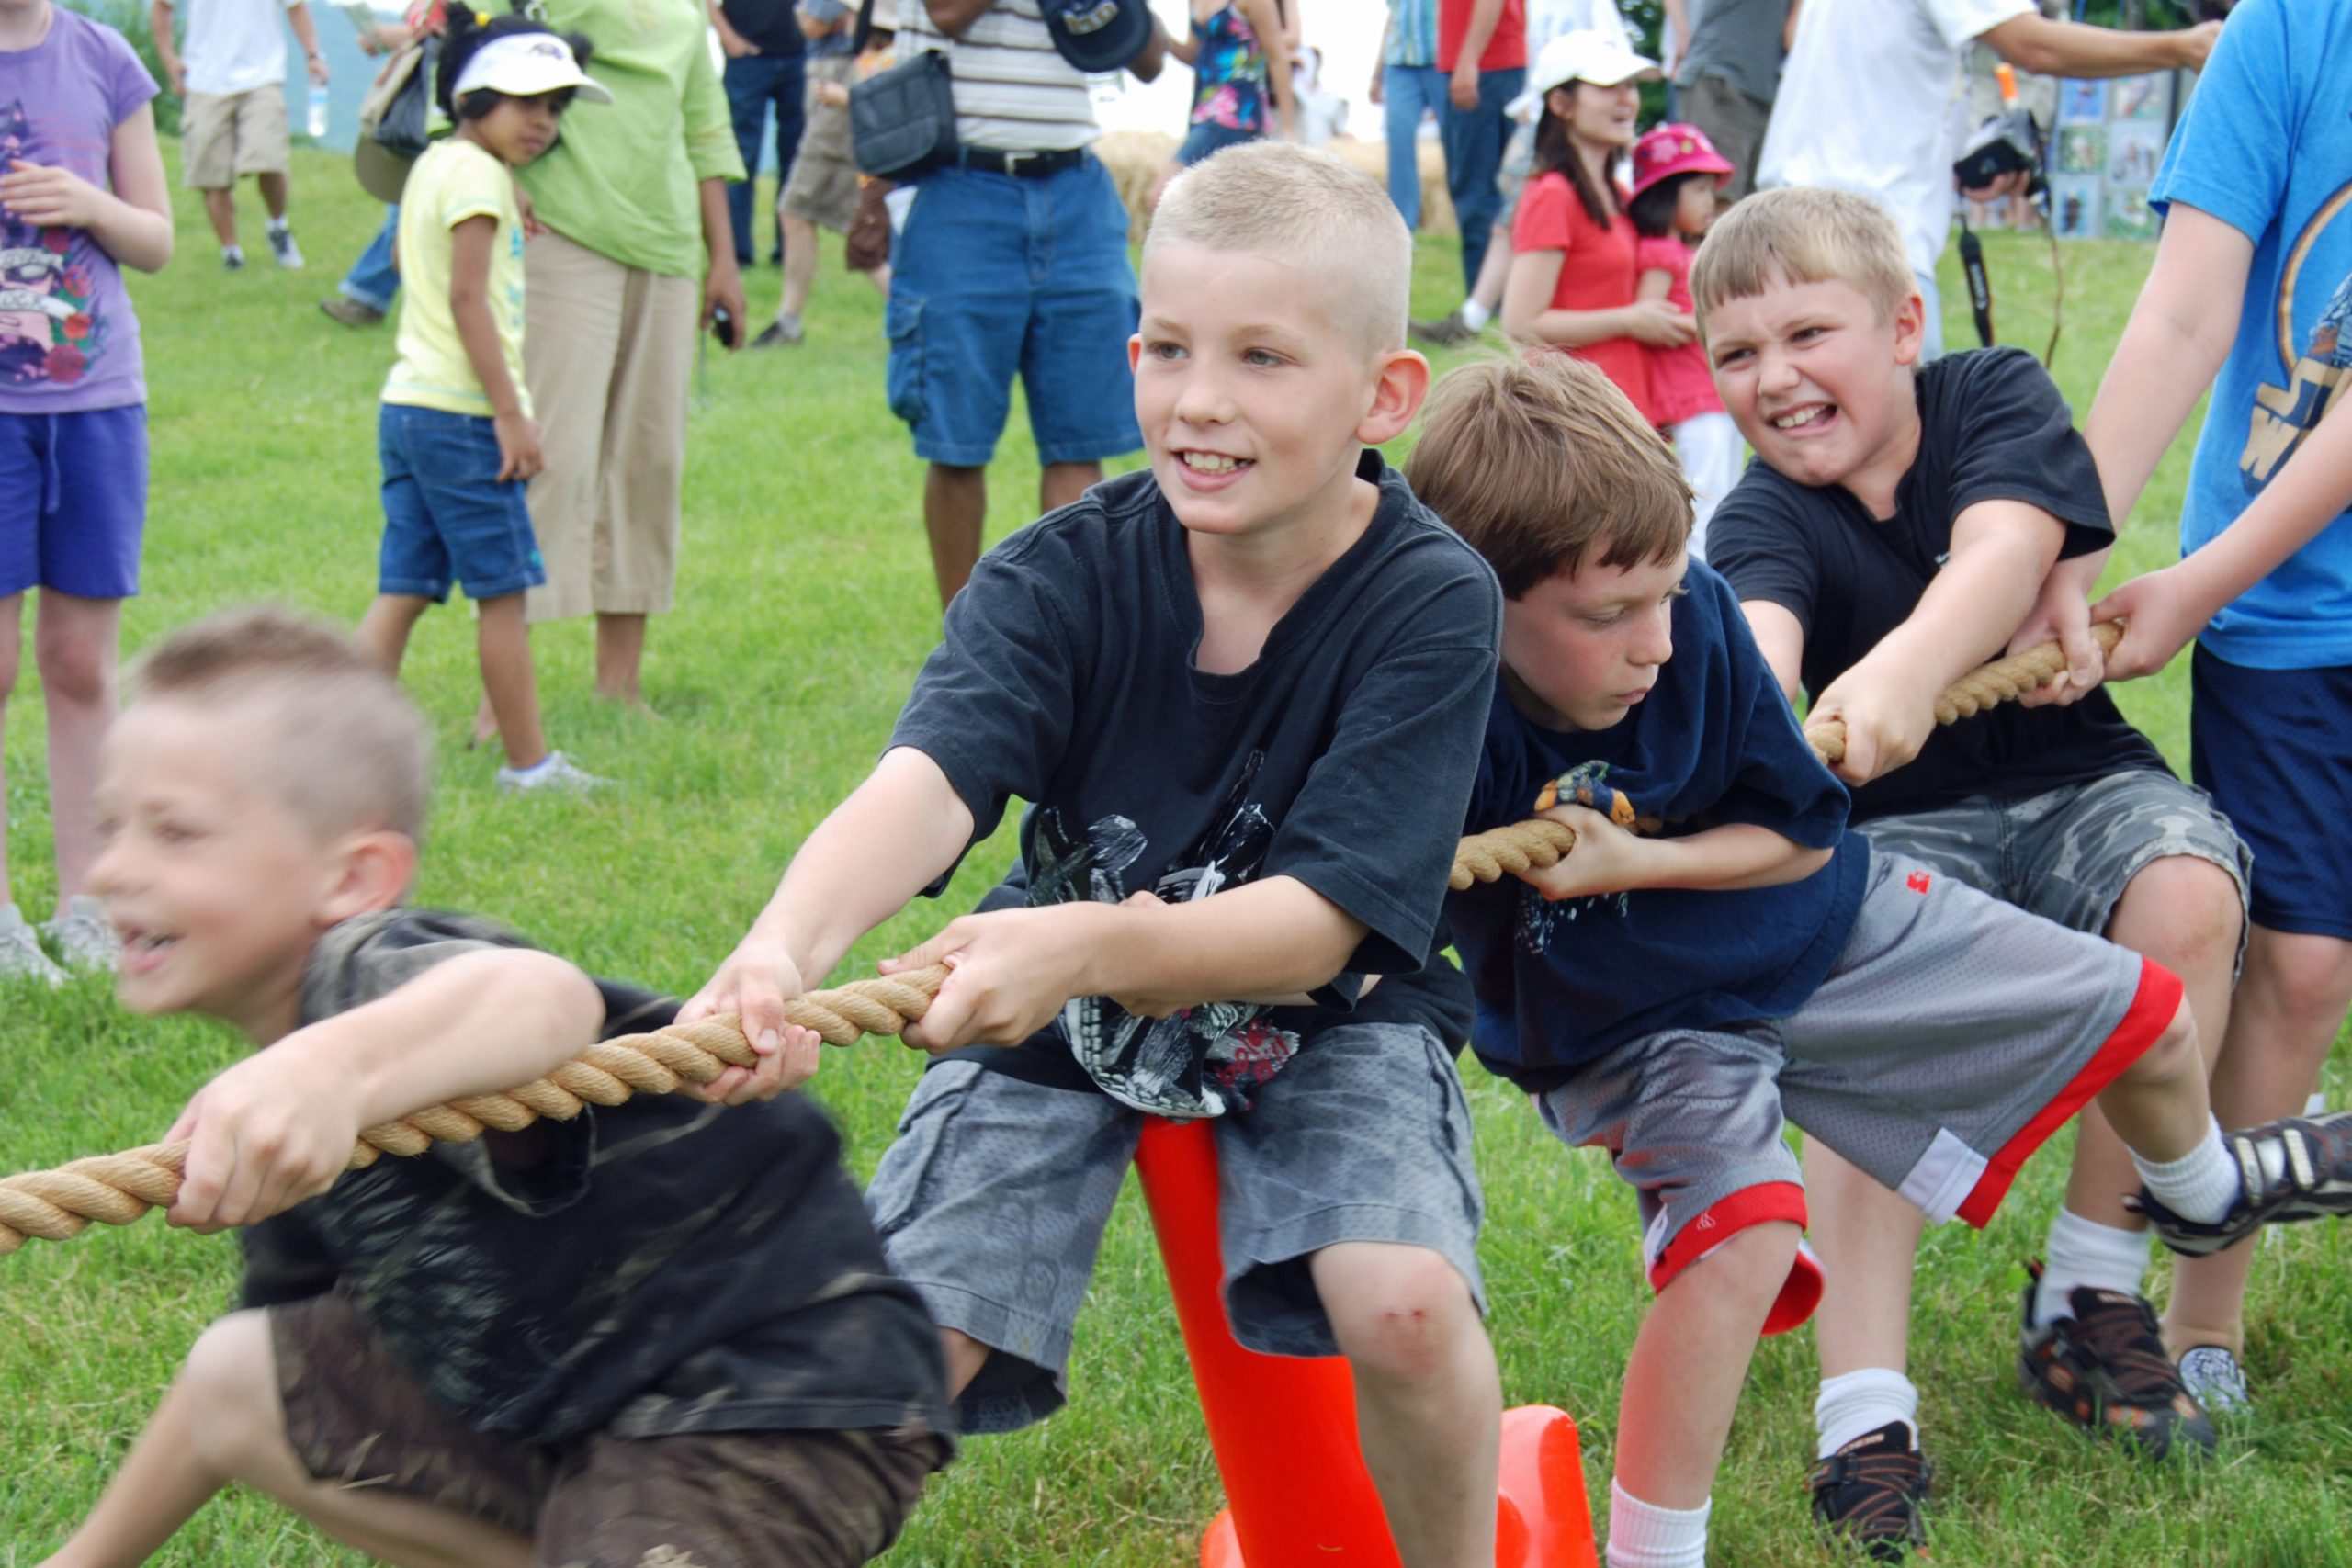 Tug o war 5798655160 scaled How Many Of These School Sports Day Events Did You Take Part In Growing Up?